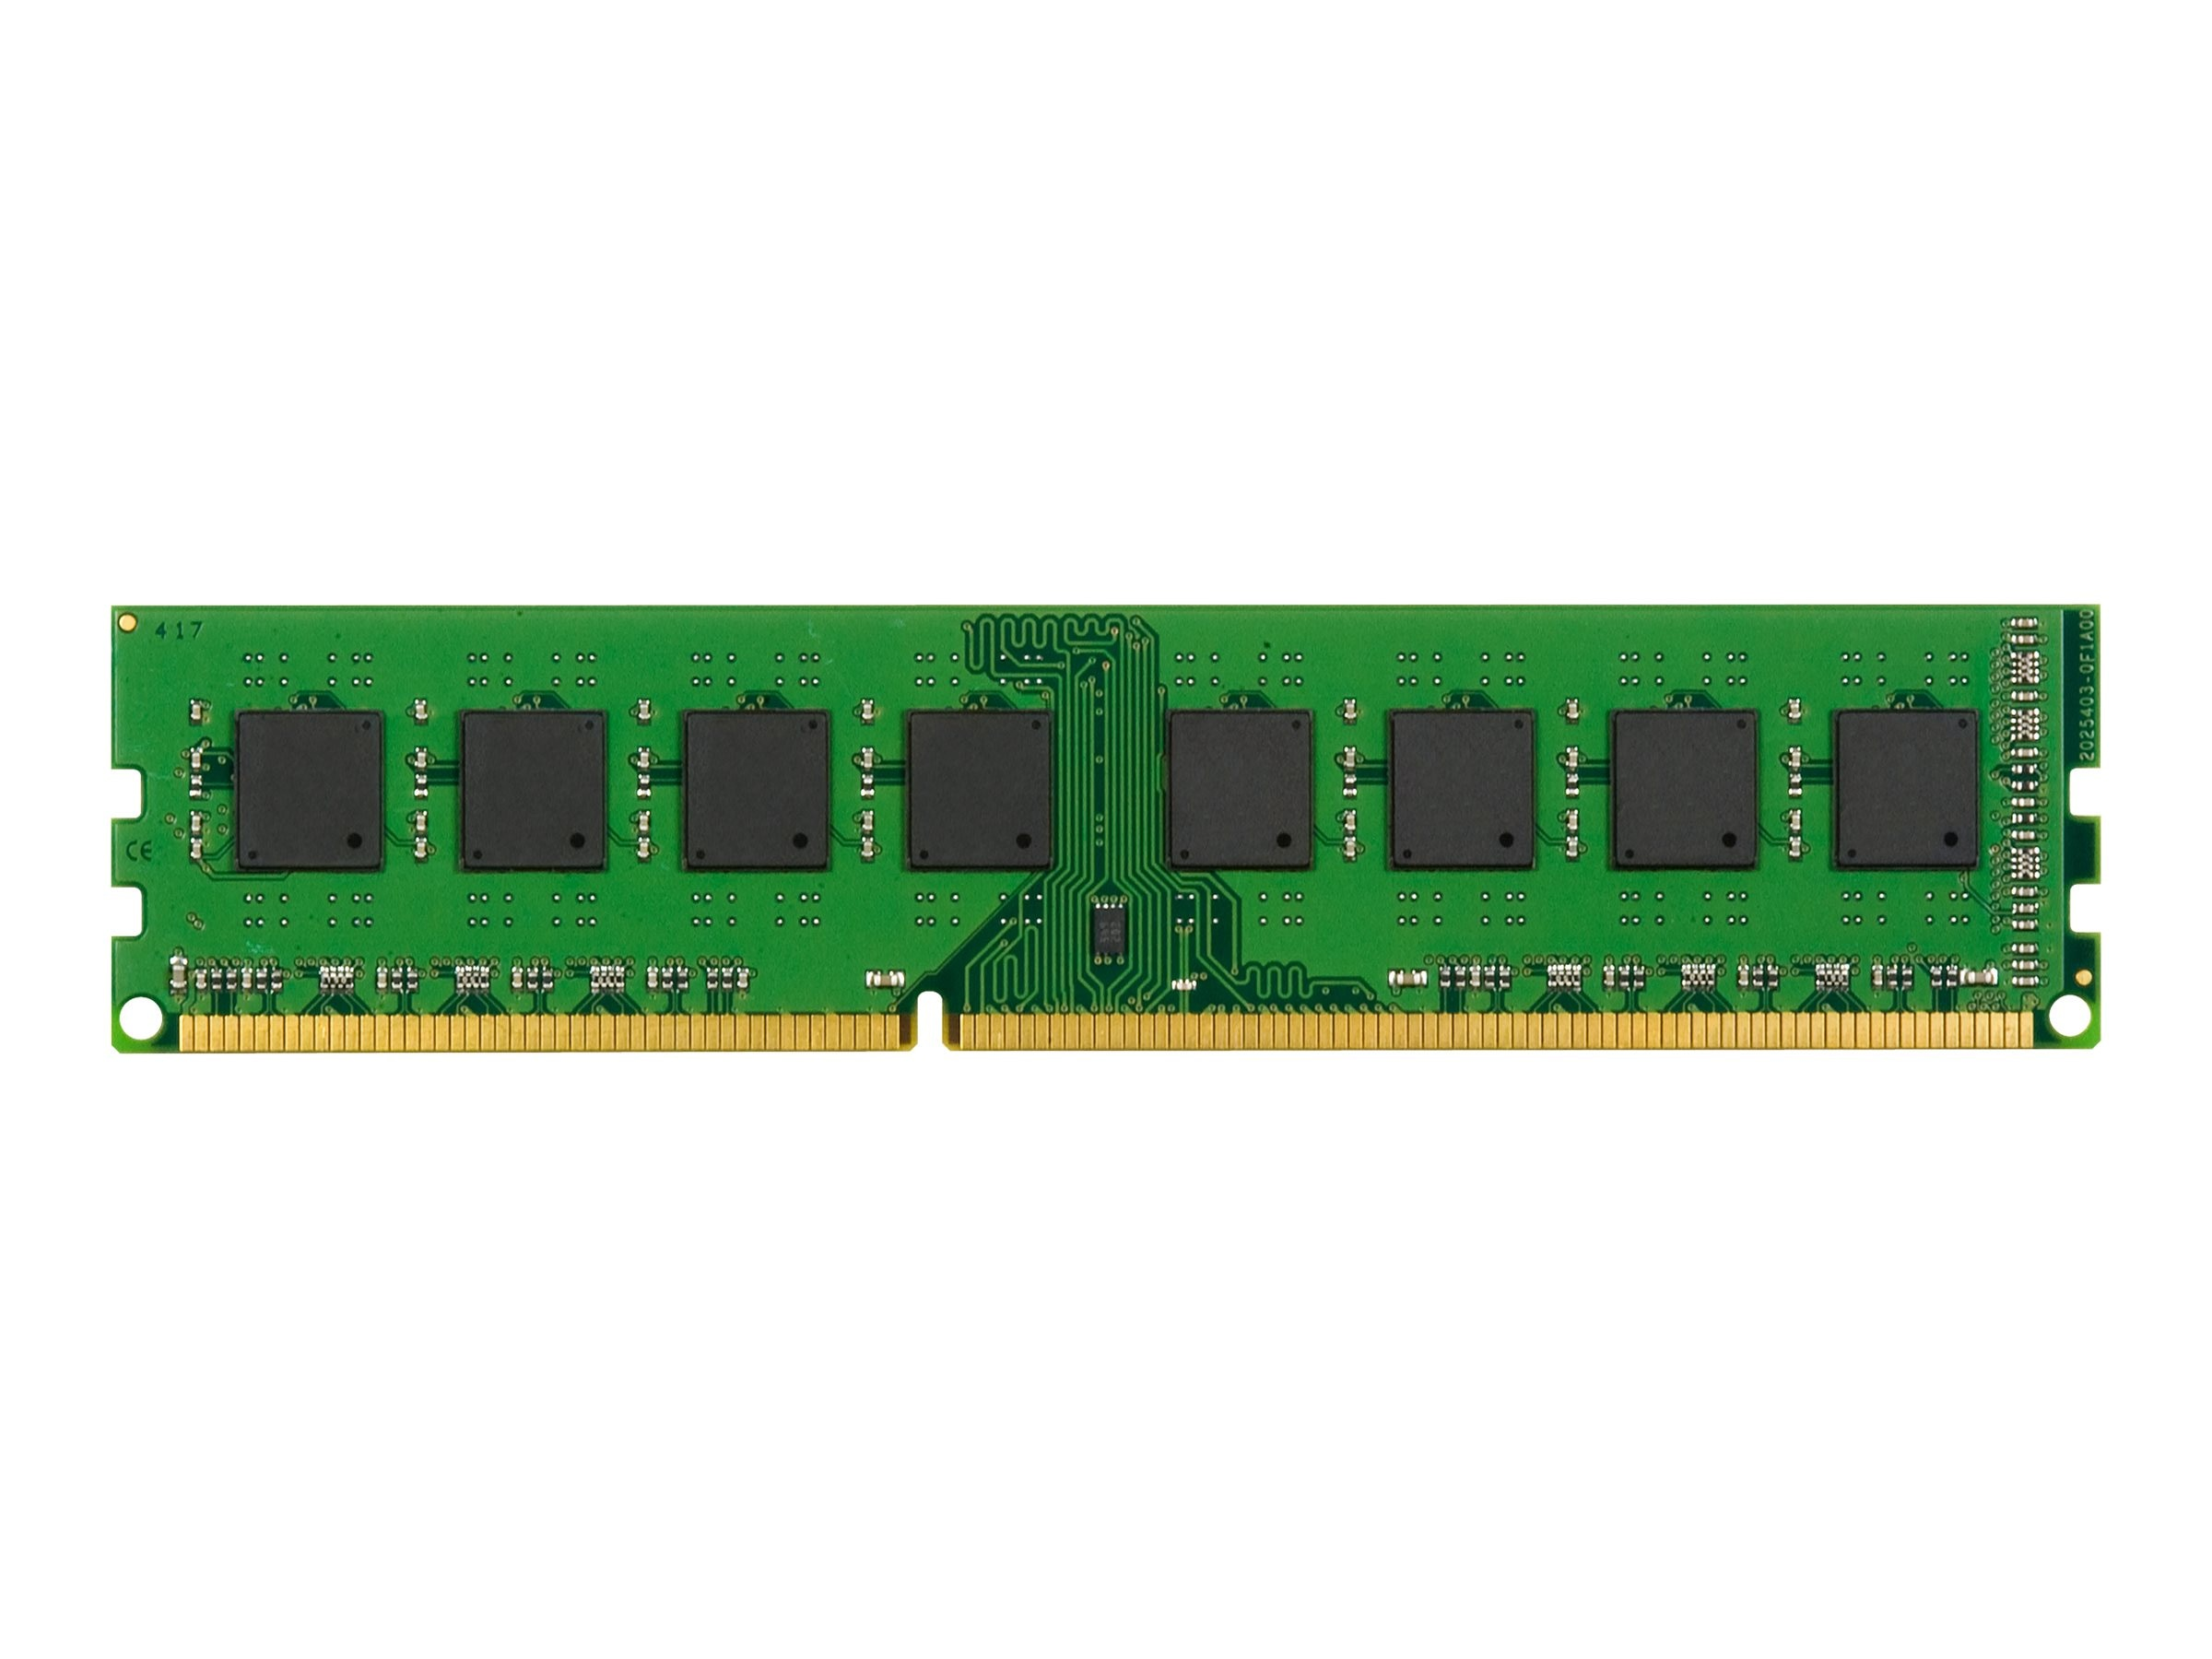 Kingston KTH9600B/8G Image 1